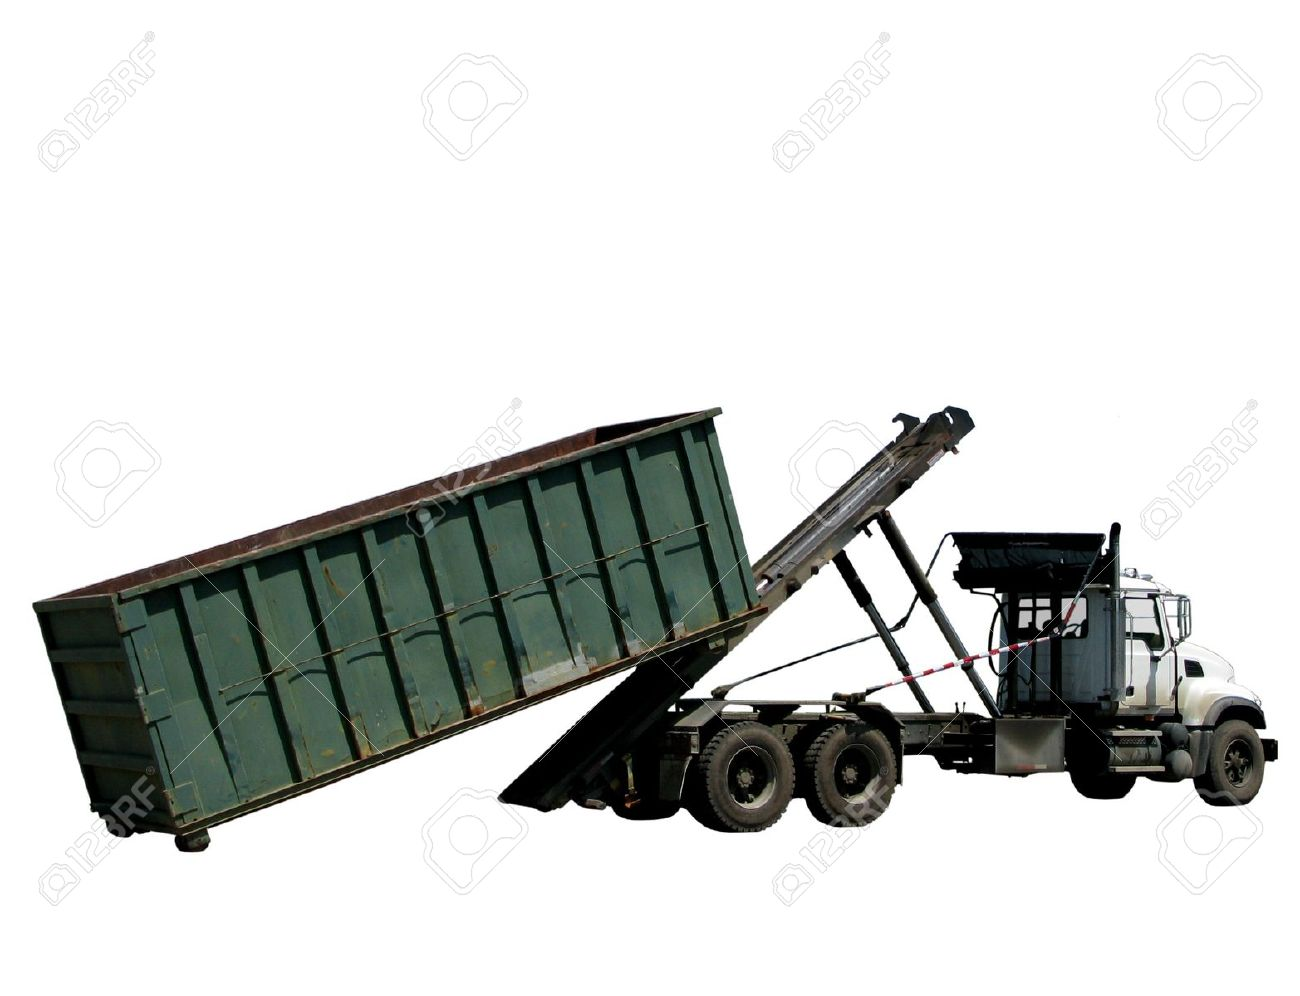 Truck loading or unloading a roll-off trash dumpster container Stock Photo - 3029574